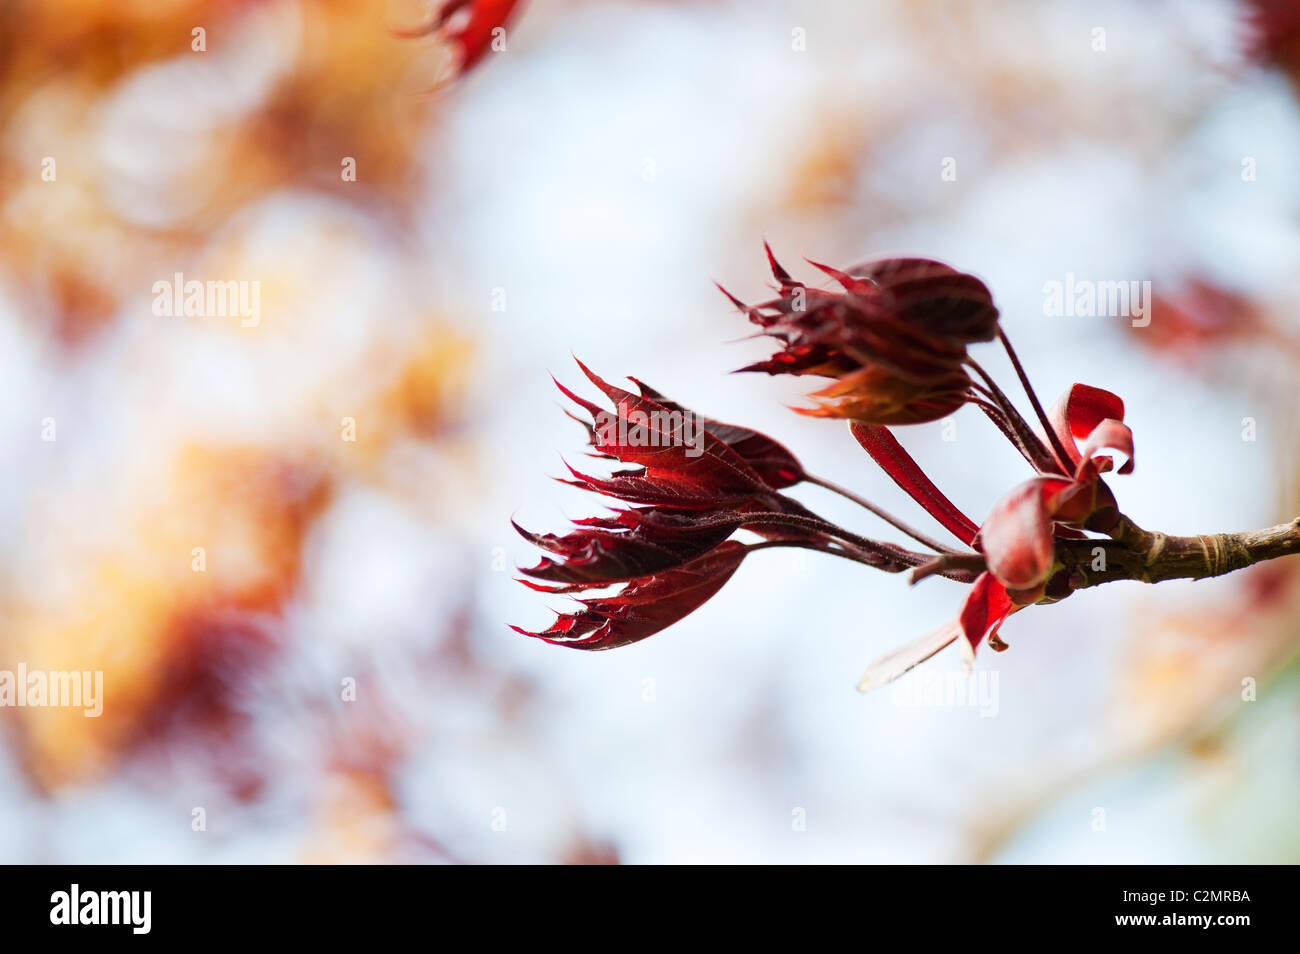 Acer platanoides 'Goldsworth Purple'. Érable de Norvège de nouvelles feuilles au printemps. UK Photo Stock